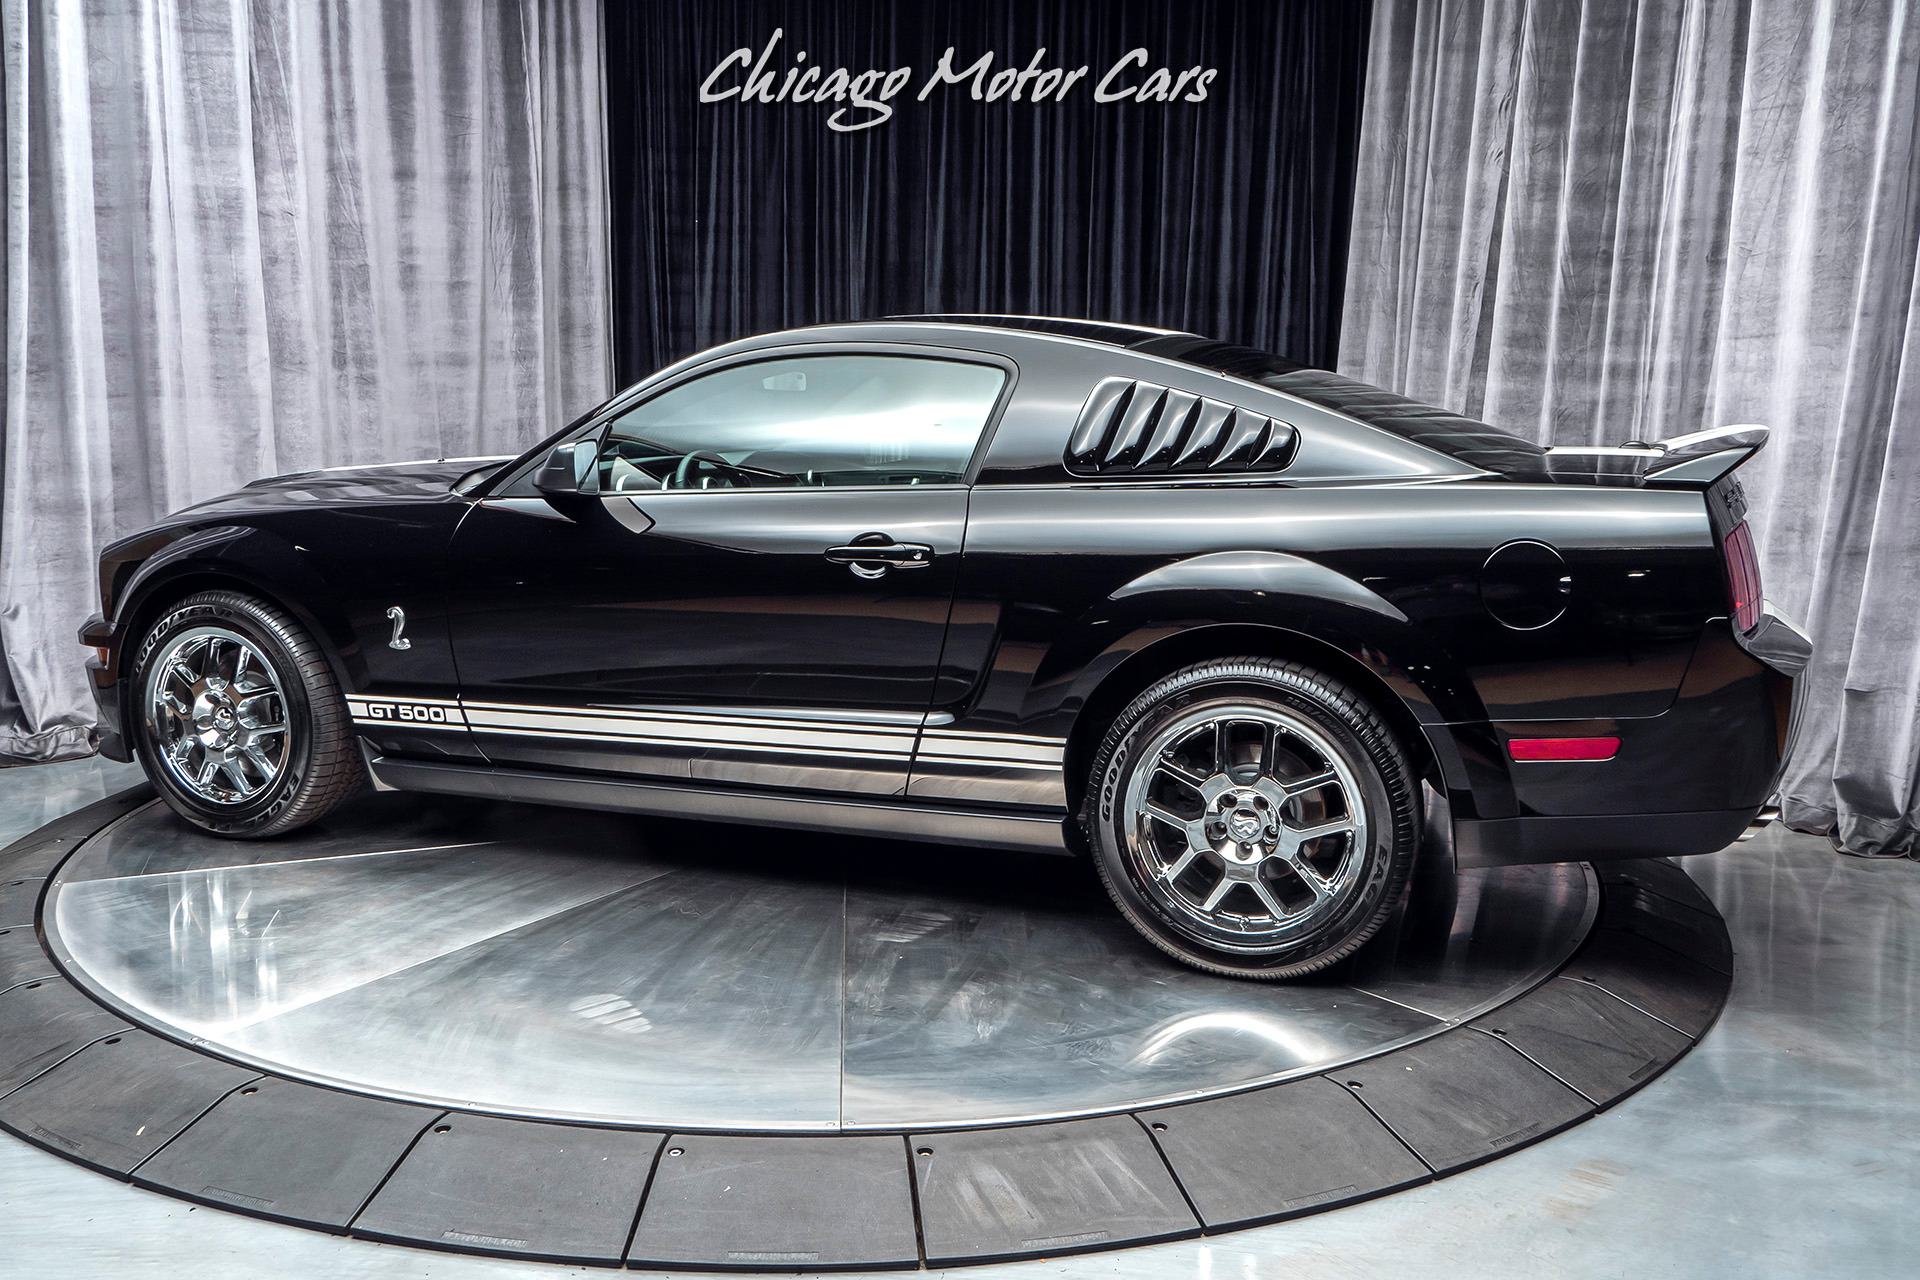 Used-2007-Ford-Mustang-Shelby-GT500-Coupe-COLLECTORS-QUALITY-ONLY-431-MILES-500HP